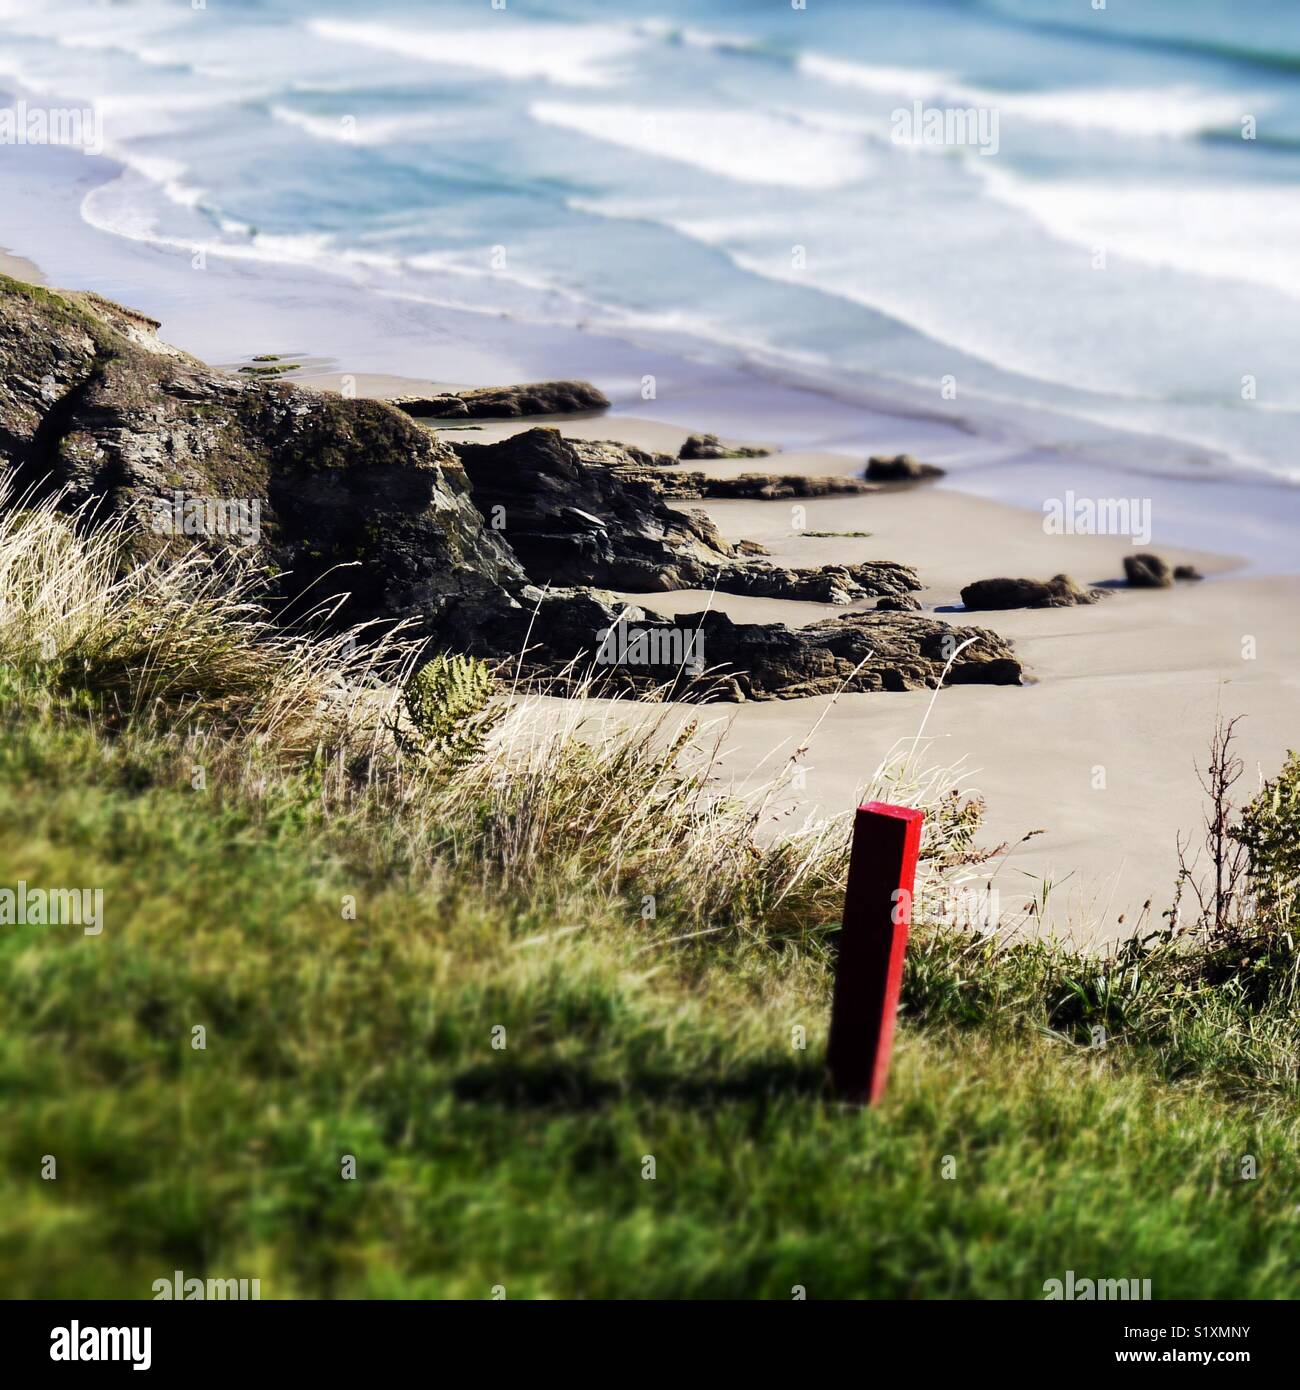 Red post on edge of public footpath along a coastal path. Stock Photo